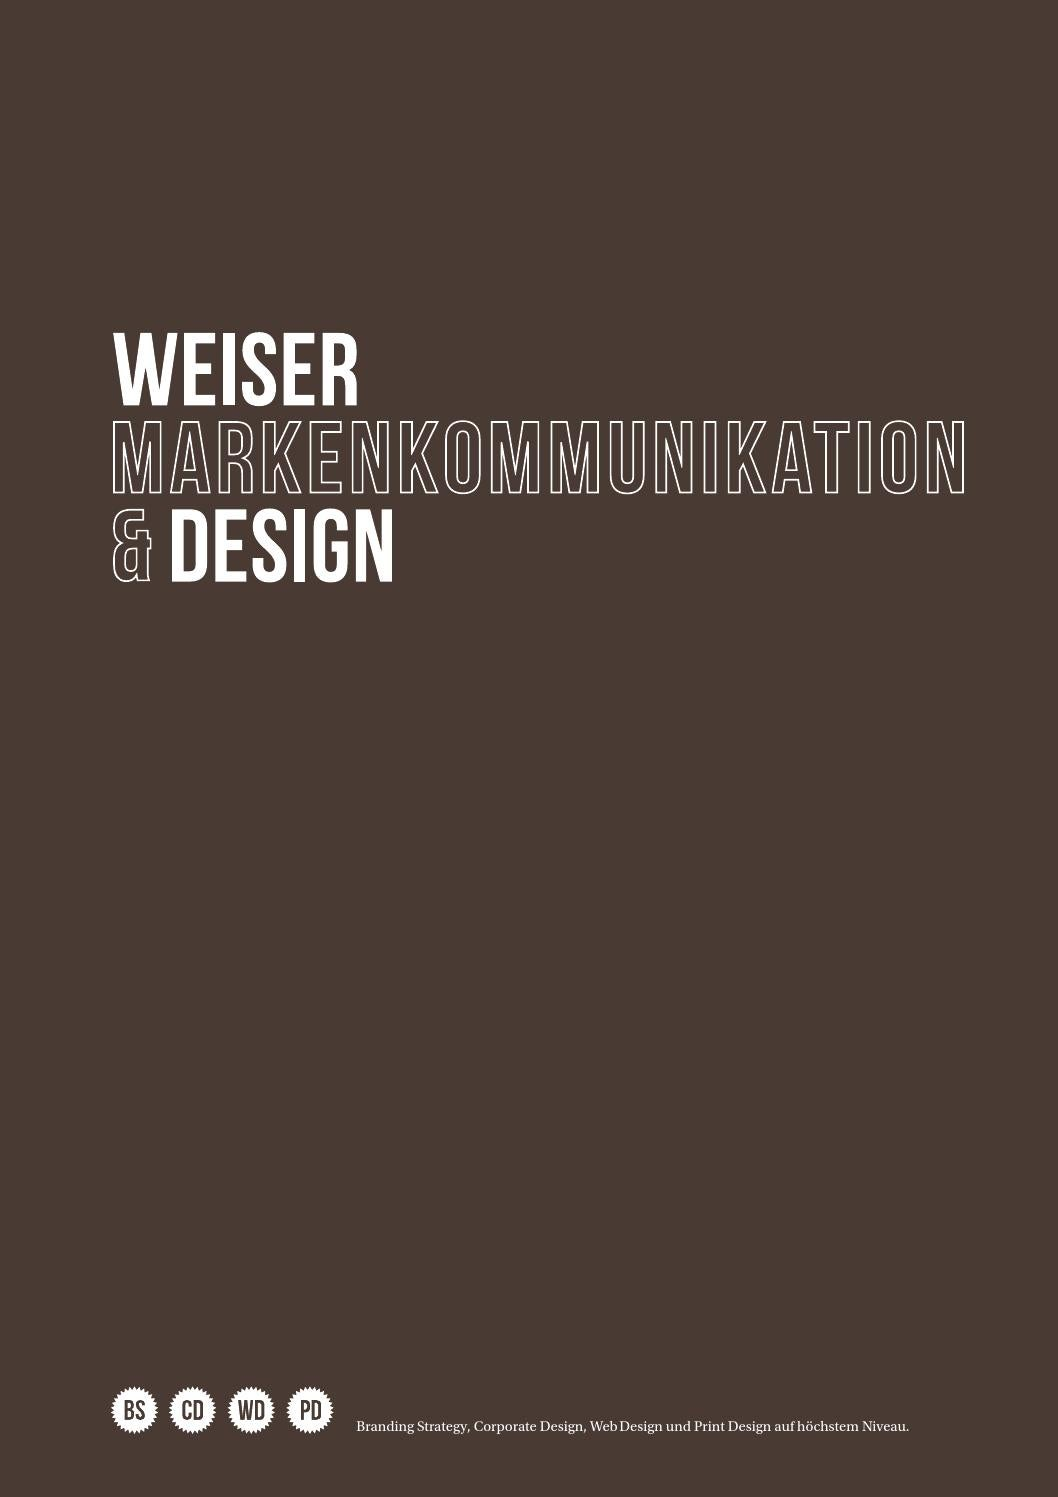 WEISER DESIGN MARKENKOMMUNIKATION by WEISER DESIGN - issuu